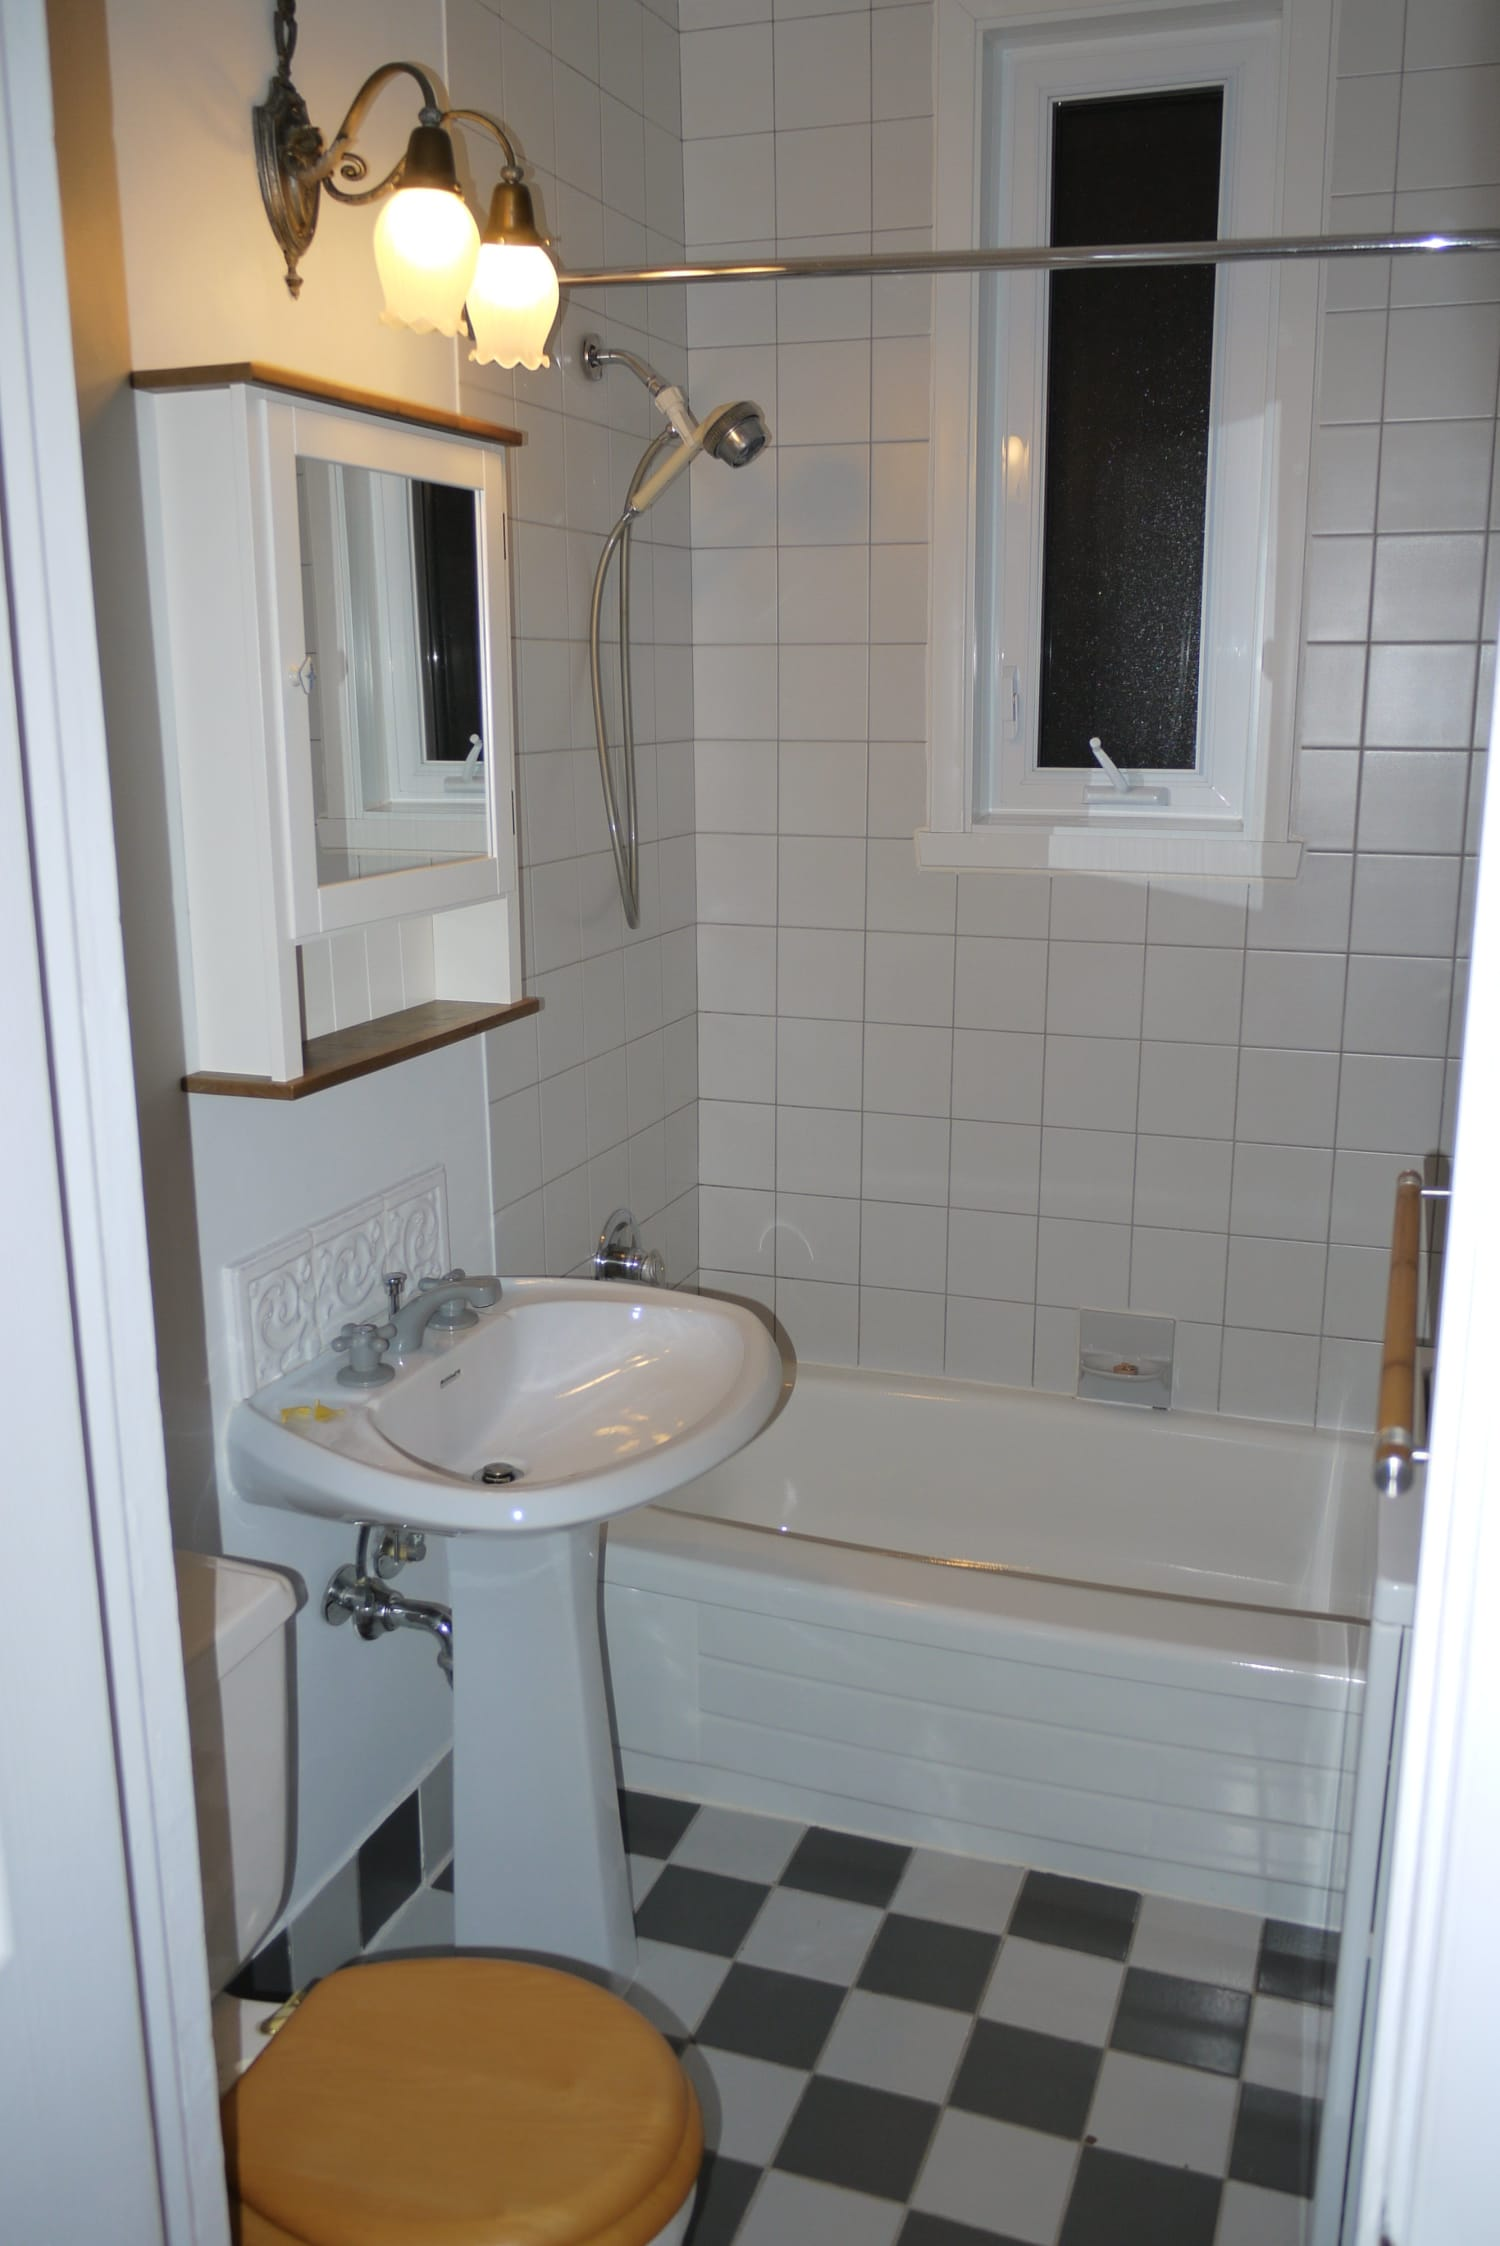 Before & After: Bland Bathroom Gets Some Modern Style